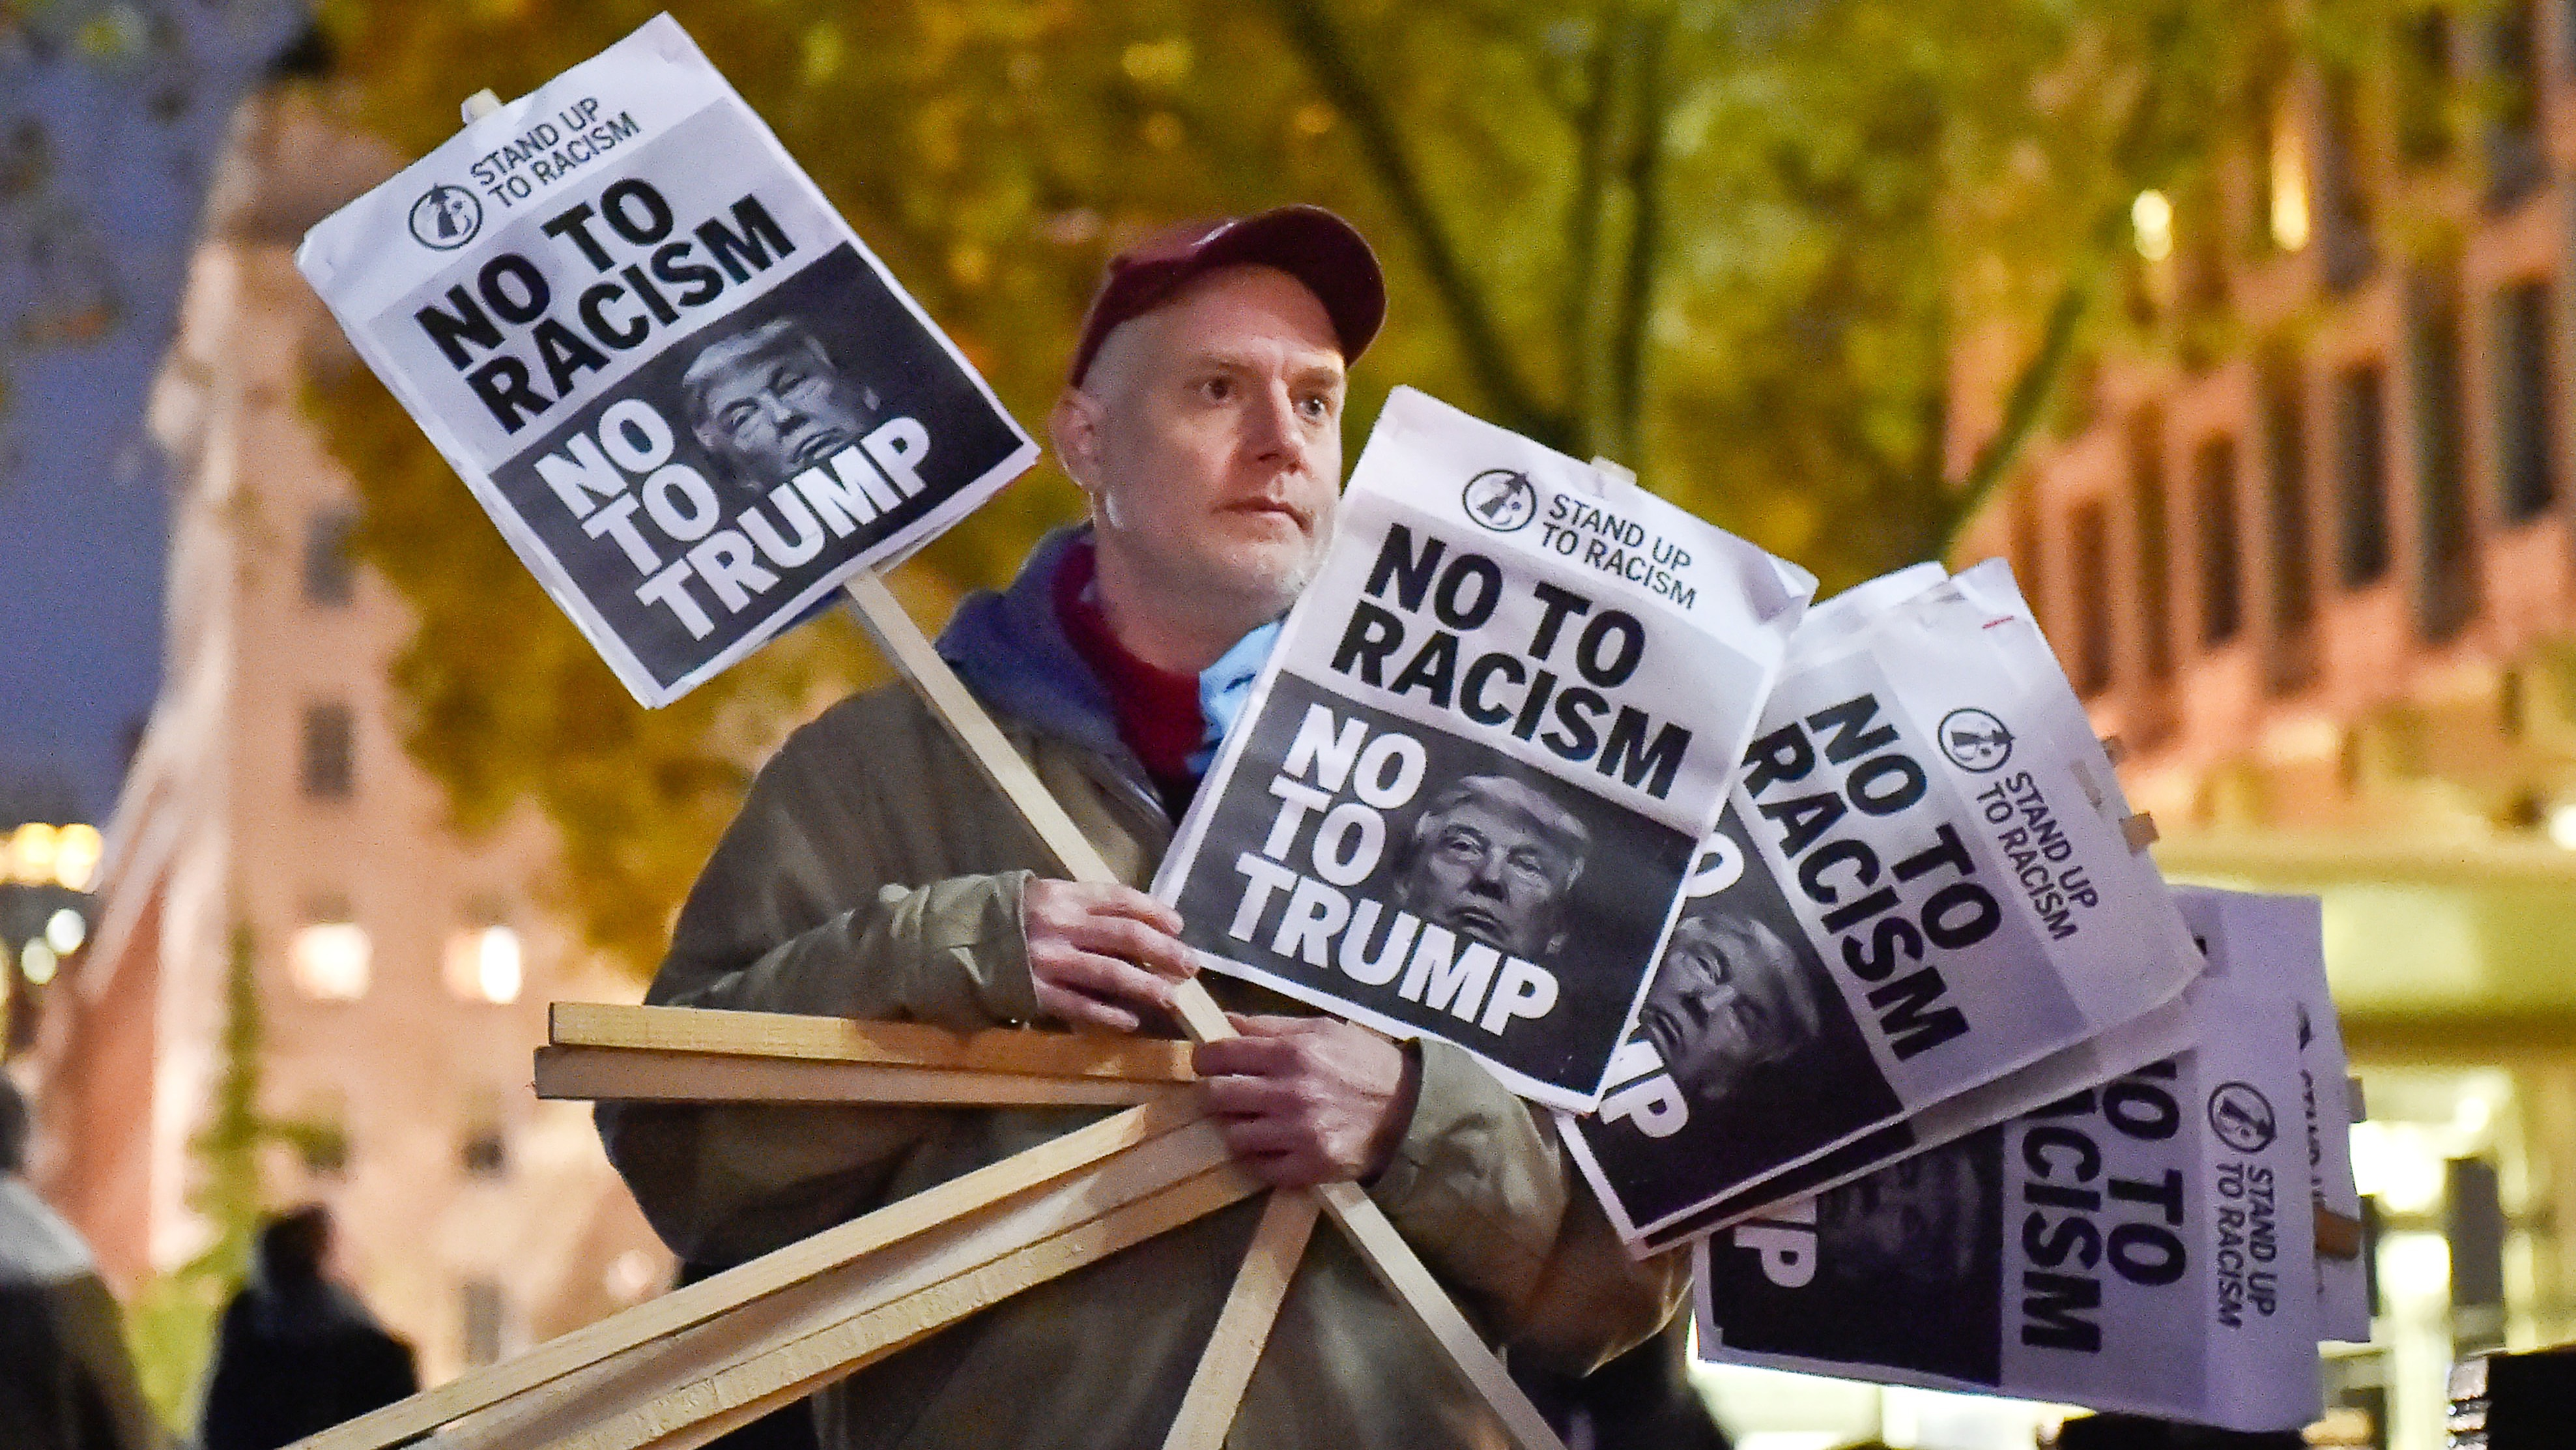 A man holds placards at an anti-racism protest against U.S. President-elect Donald Trump outside of the U.S Embassy in London